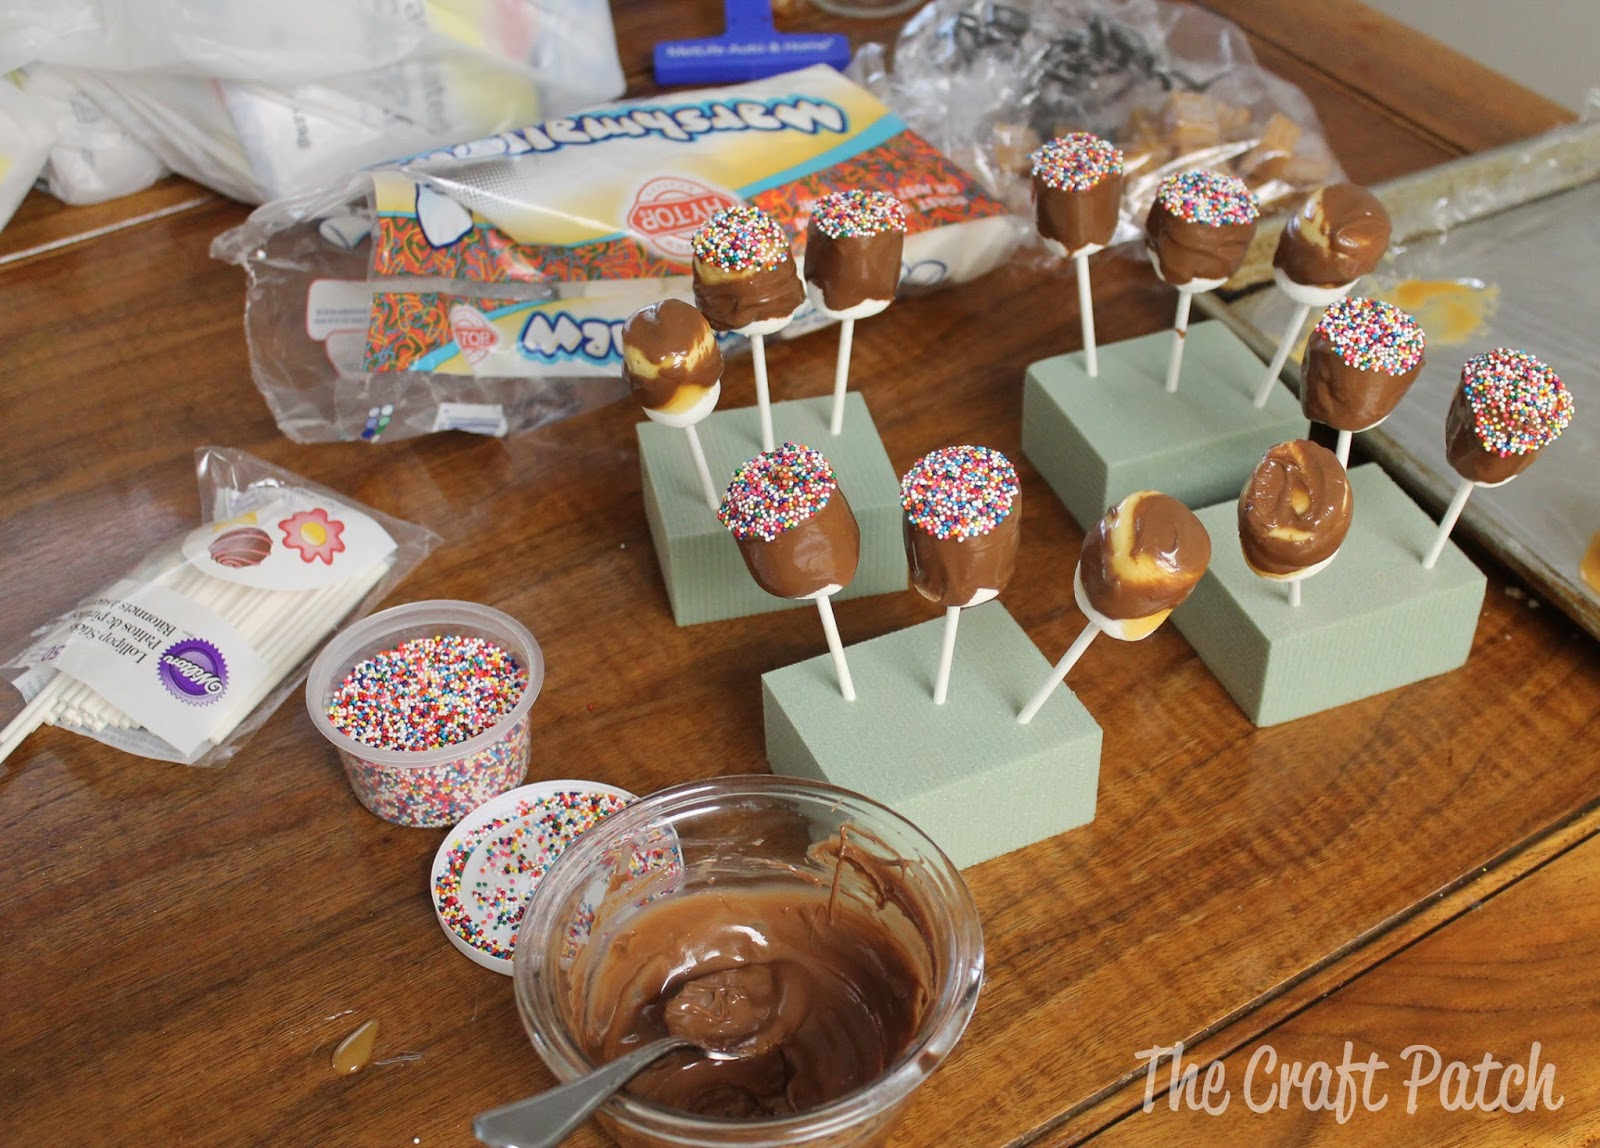 Putting the wet mallows into craft foam to dry worked really well! My marshmallow pops were much prettier since they didn't have a flattened side where they ...